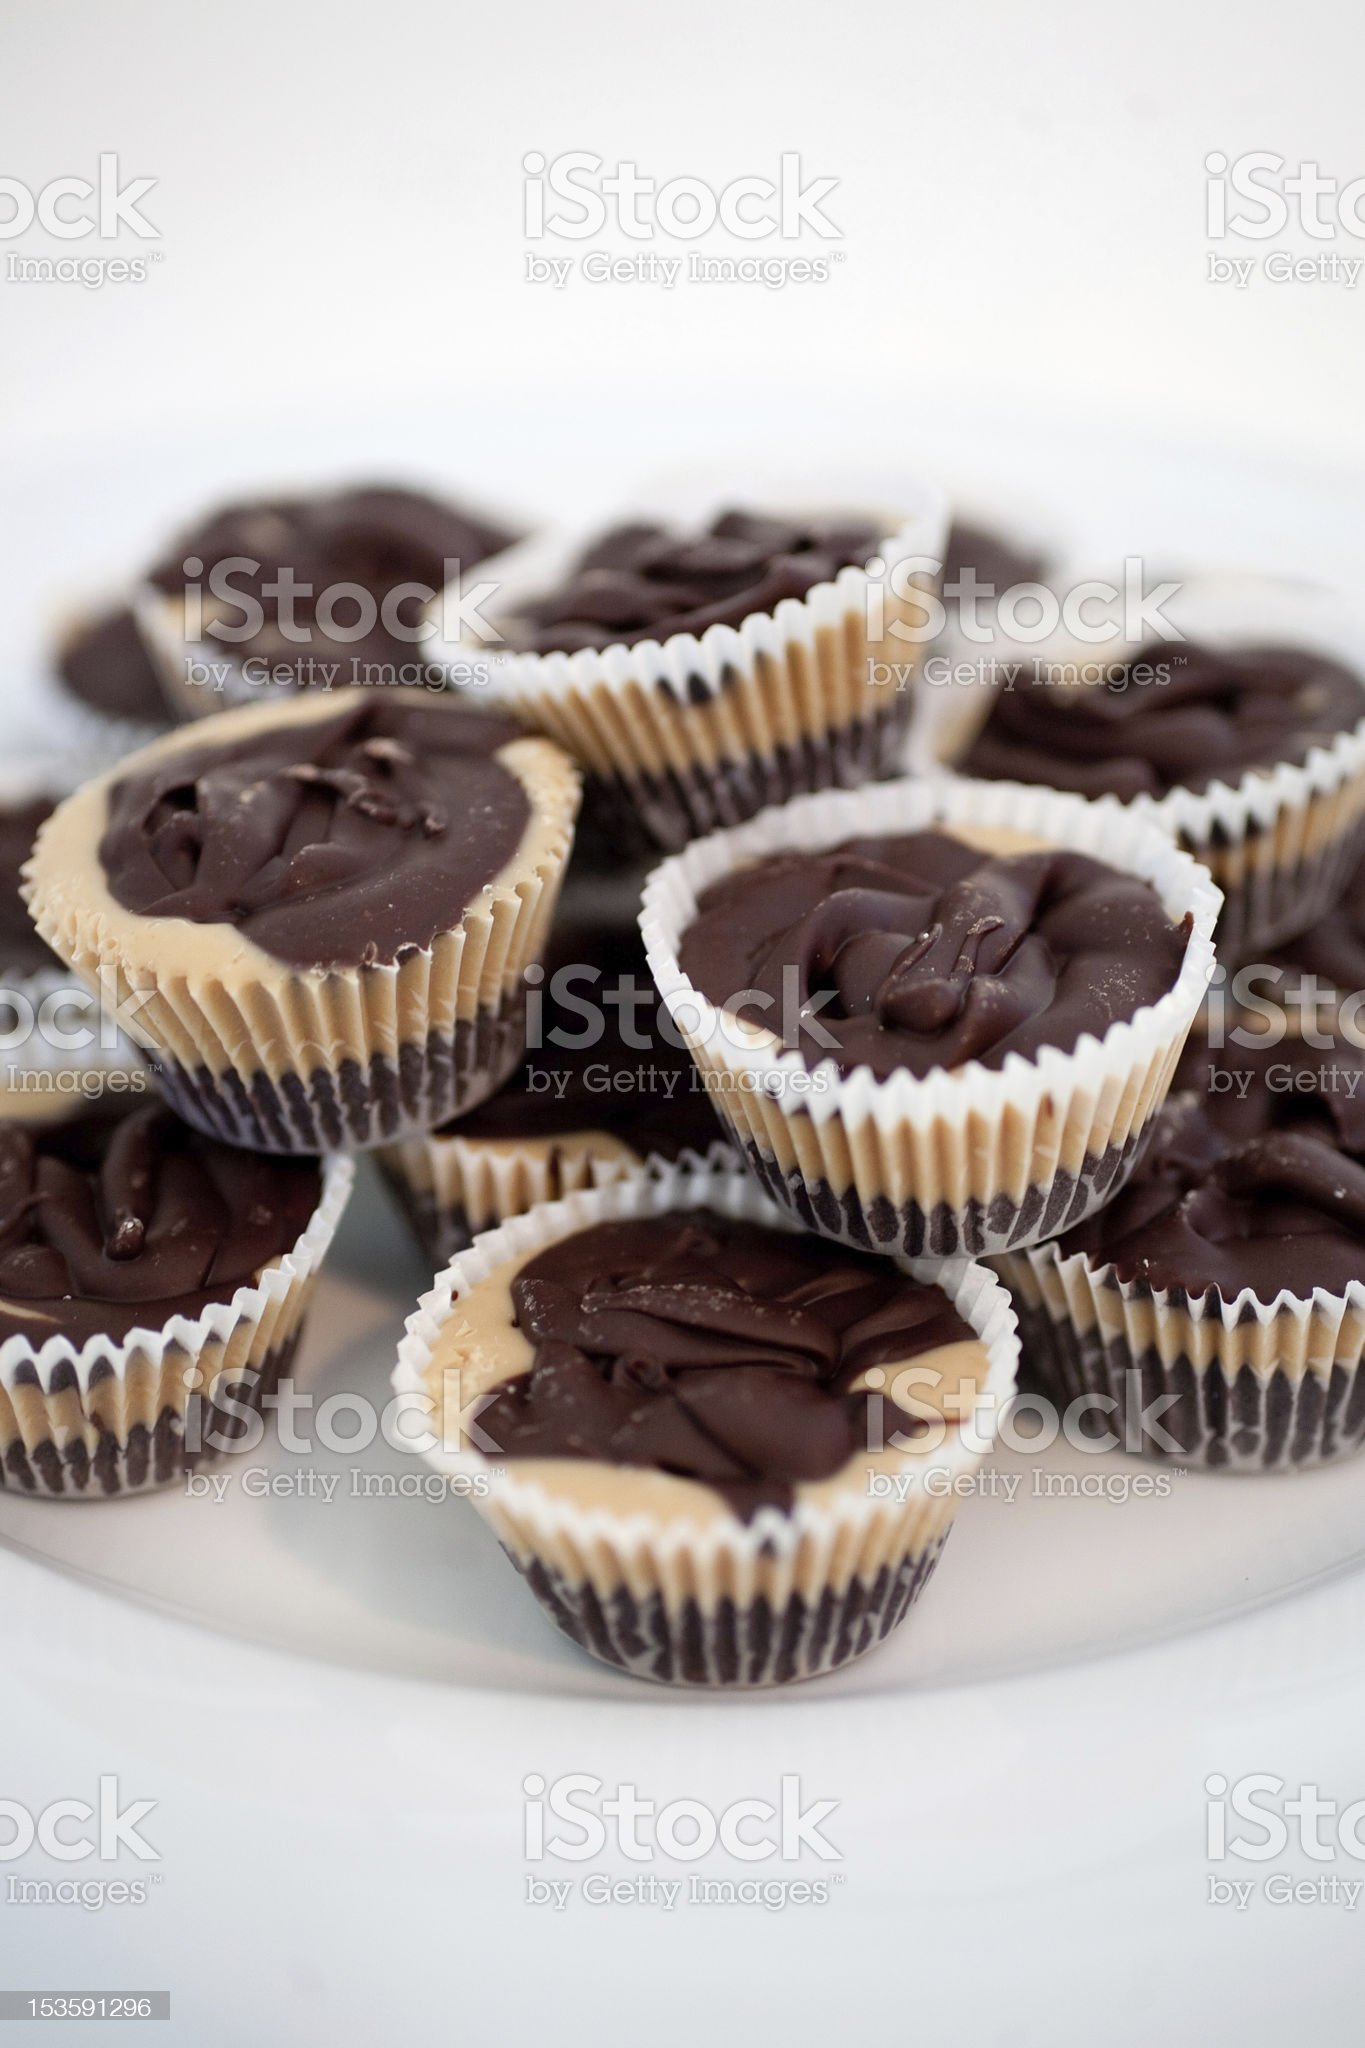 Peanut Butter Cups on White Plate. royalty-free stock photo